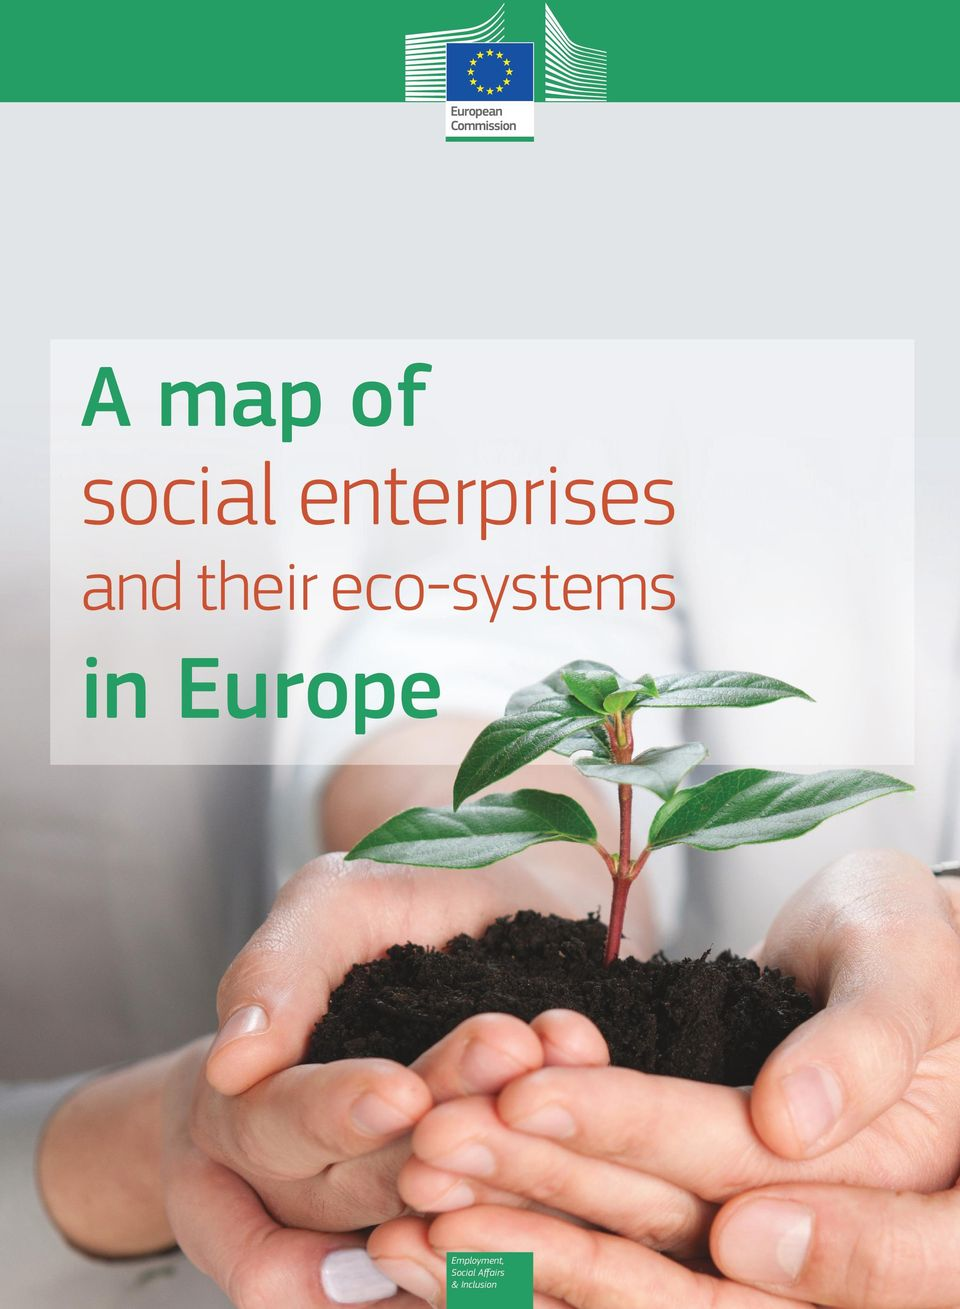 eco-systems in Europe